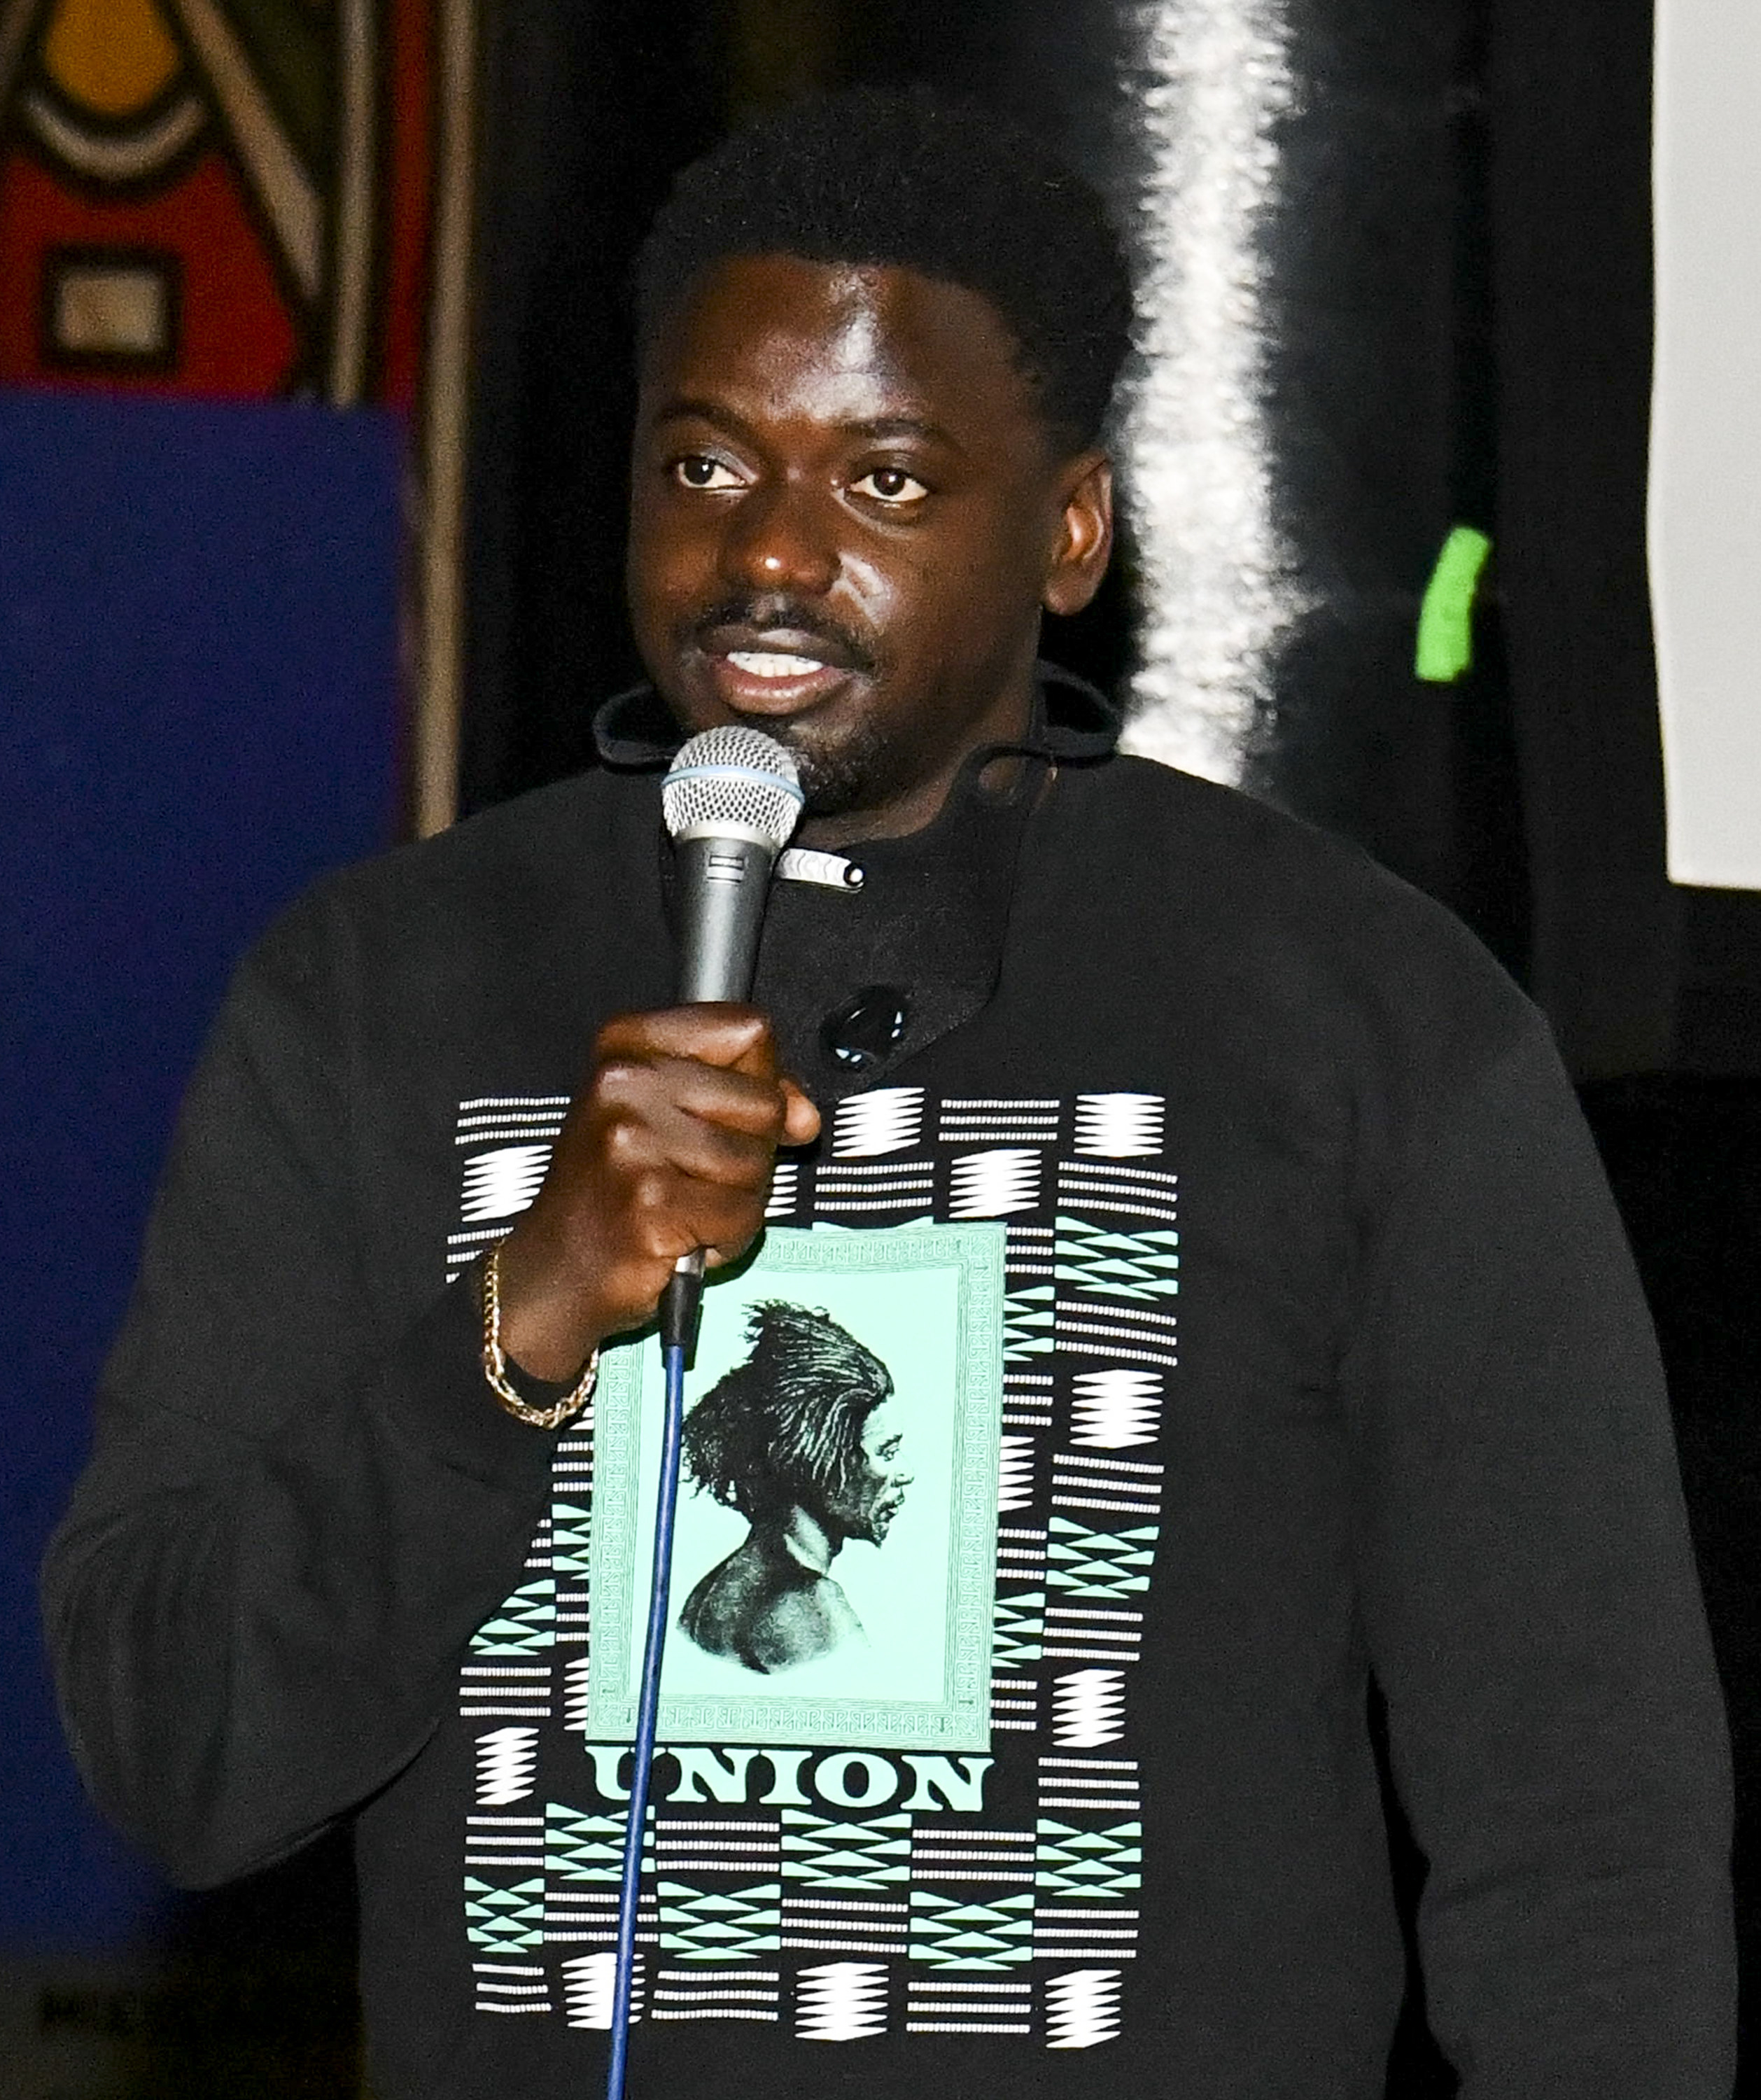 Daniel speaking into a microphone while wearing a hoodie with the image of a Black man with the word 'Union' on it